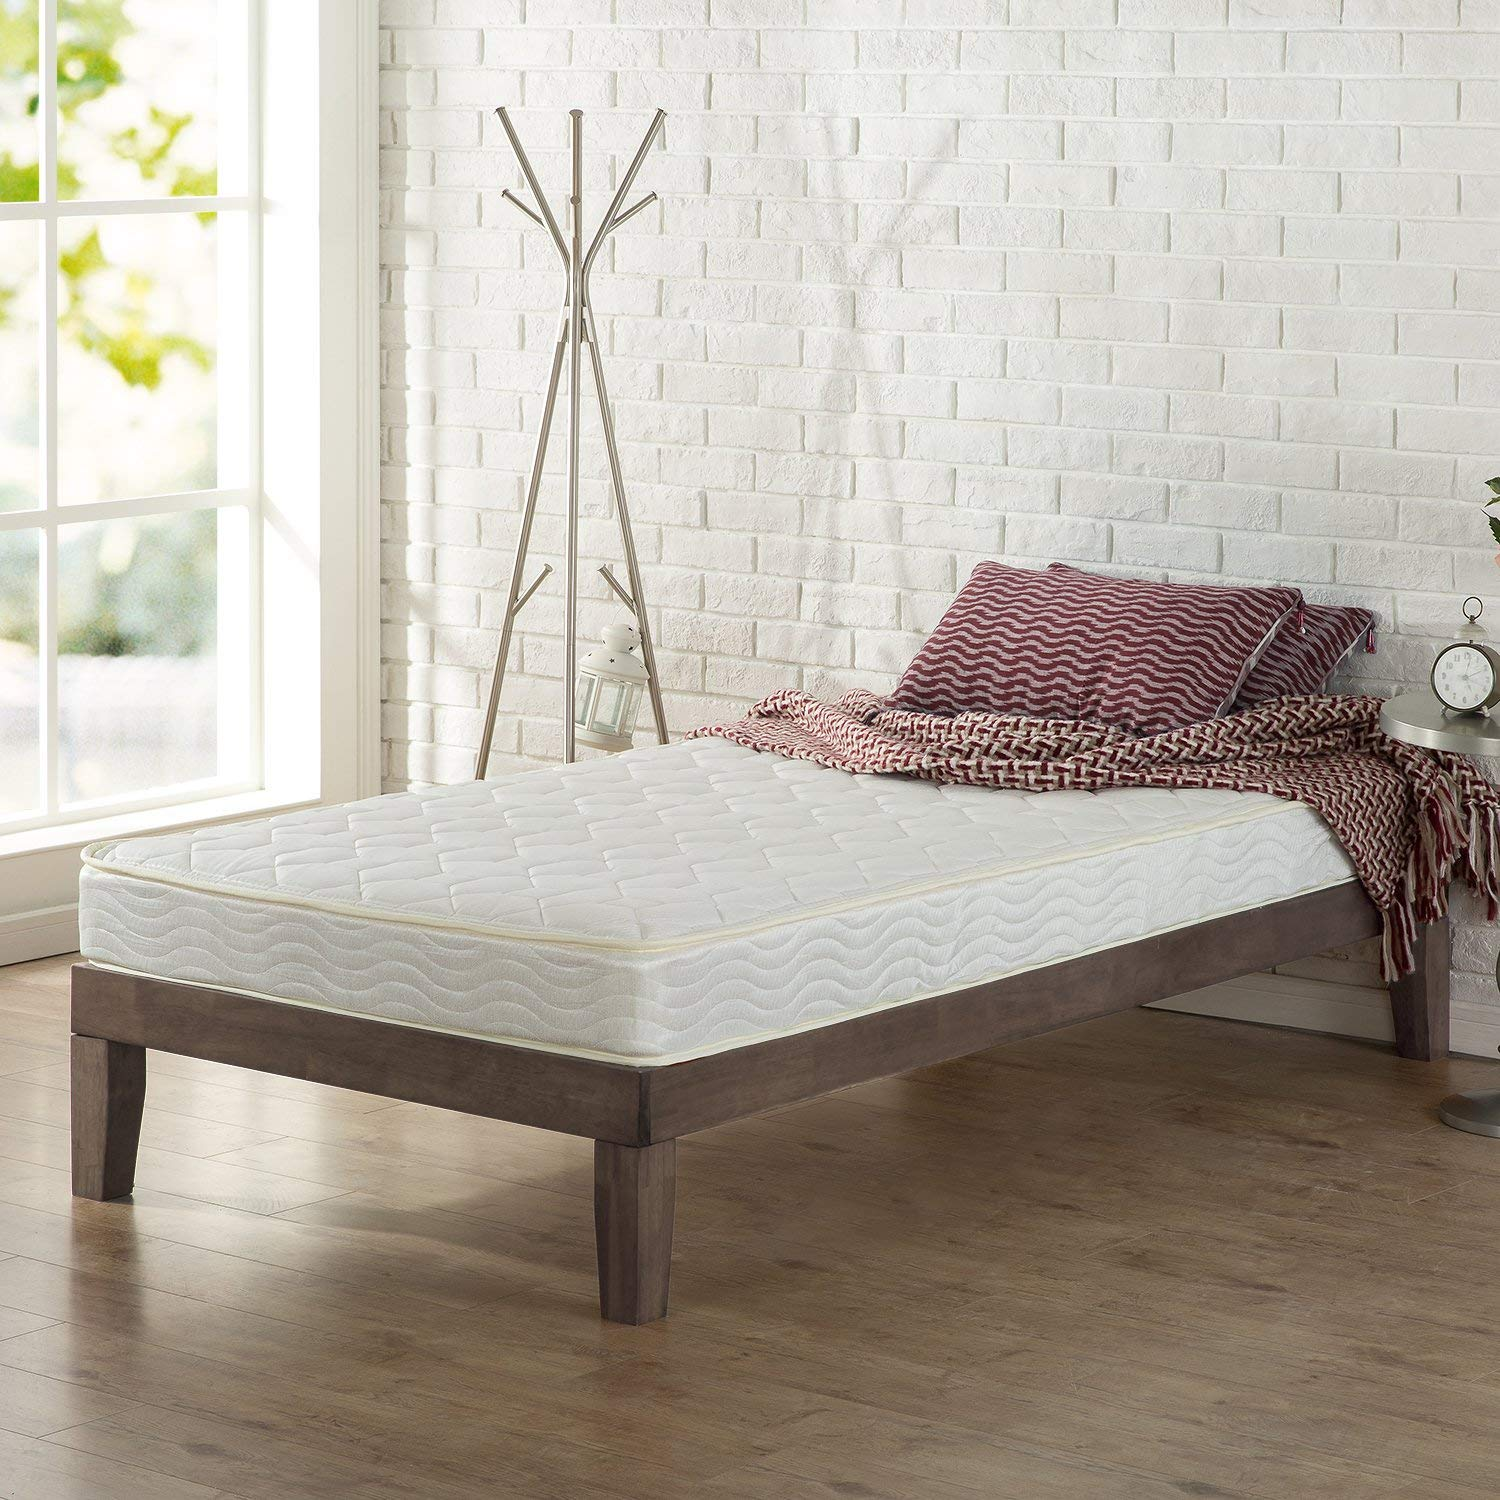 Zinus 6 Inch Spring Mattress Review